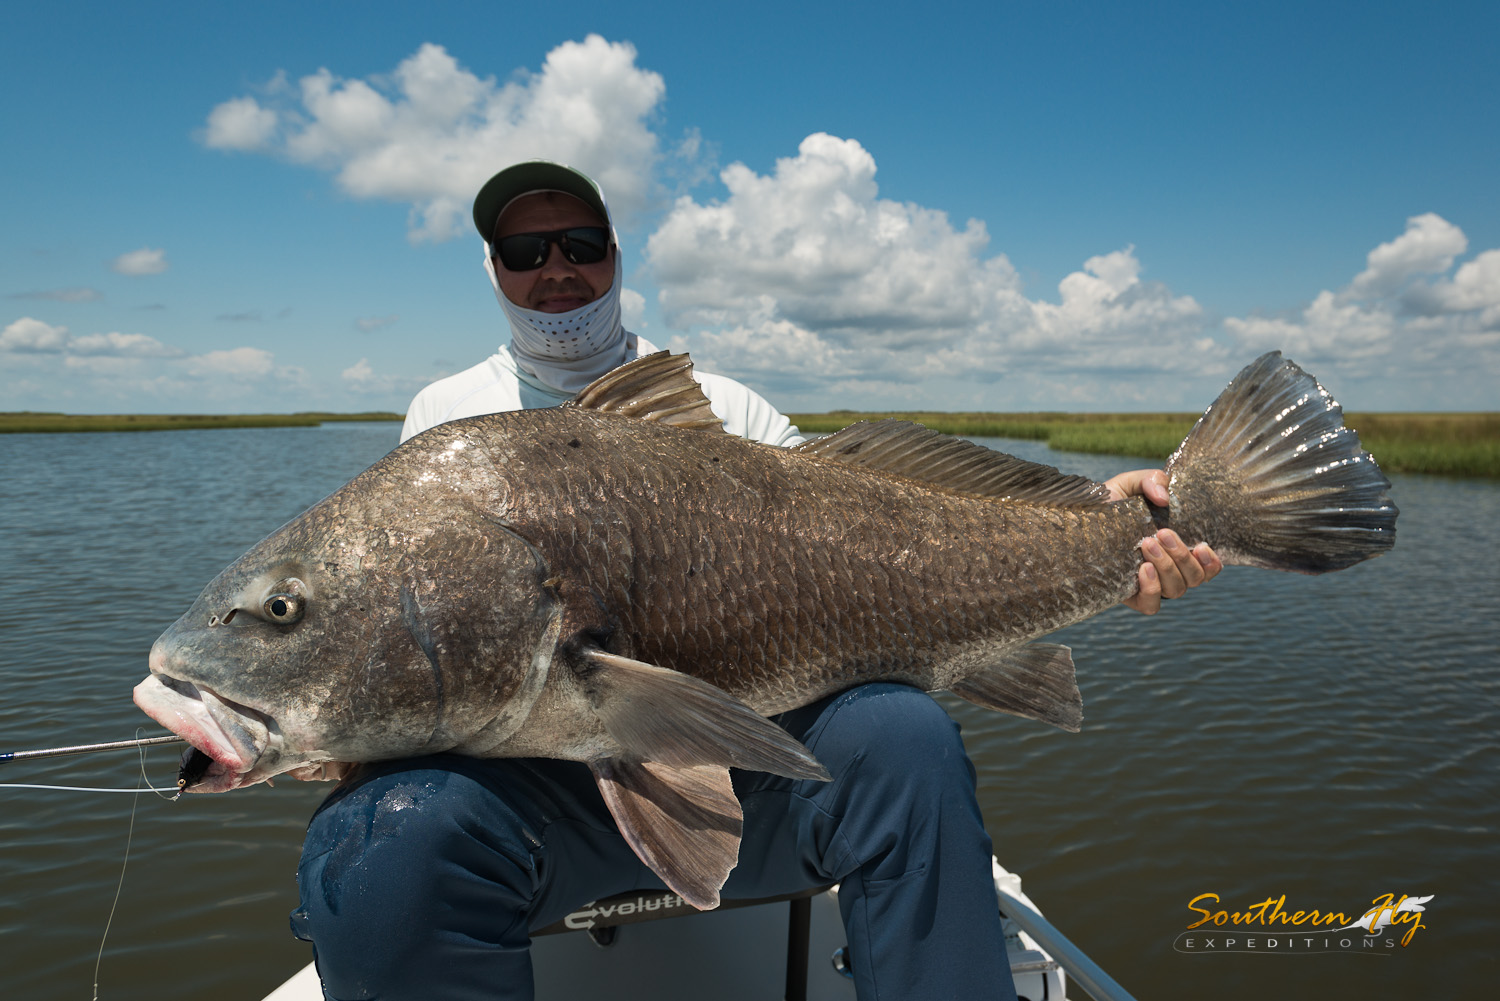 2019-07-29-30_SouthernFlyExpeditions_NewOrleans_AlanFeeser-4.jpg